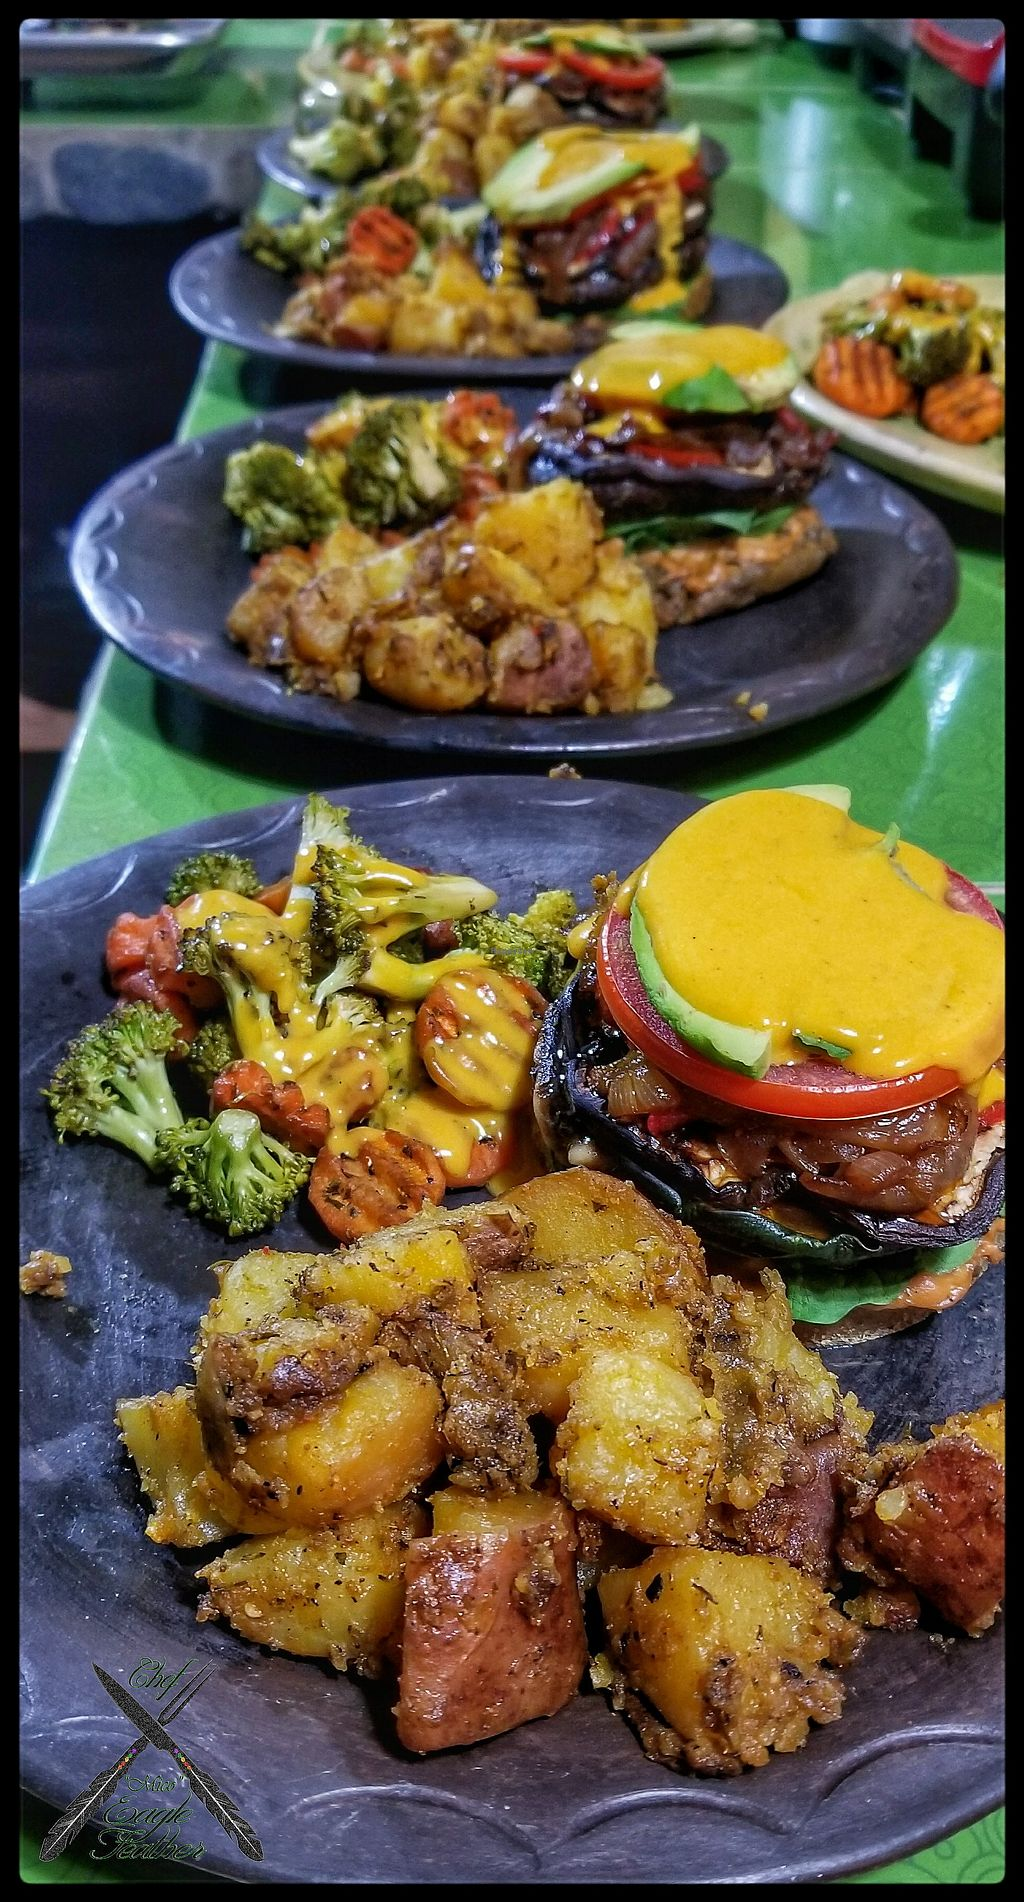 """Photo of Finca Oasis Verde   by <a href=""""/members/profile/EagleFeather"""">EagleFeather</a> <br/>Open-Faced Portobello Burger with Roasted Potatoes and Sautéed Vegetables  <br/> November 19, 2017  - <a href='/contact/abuse/image/105469/327183'>Report</a>"""